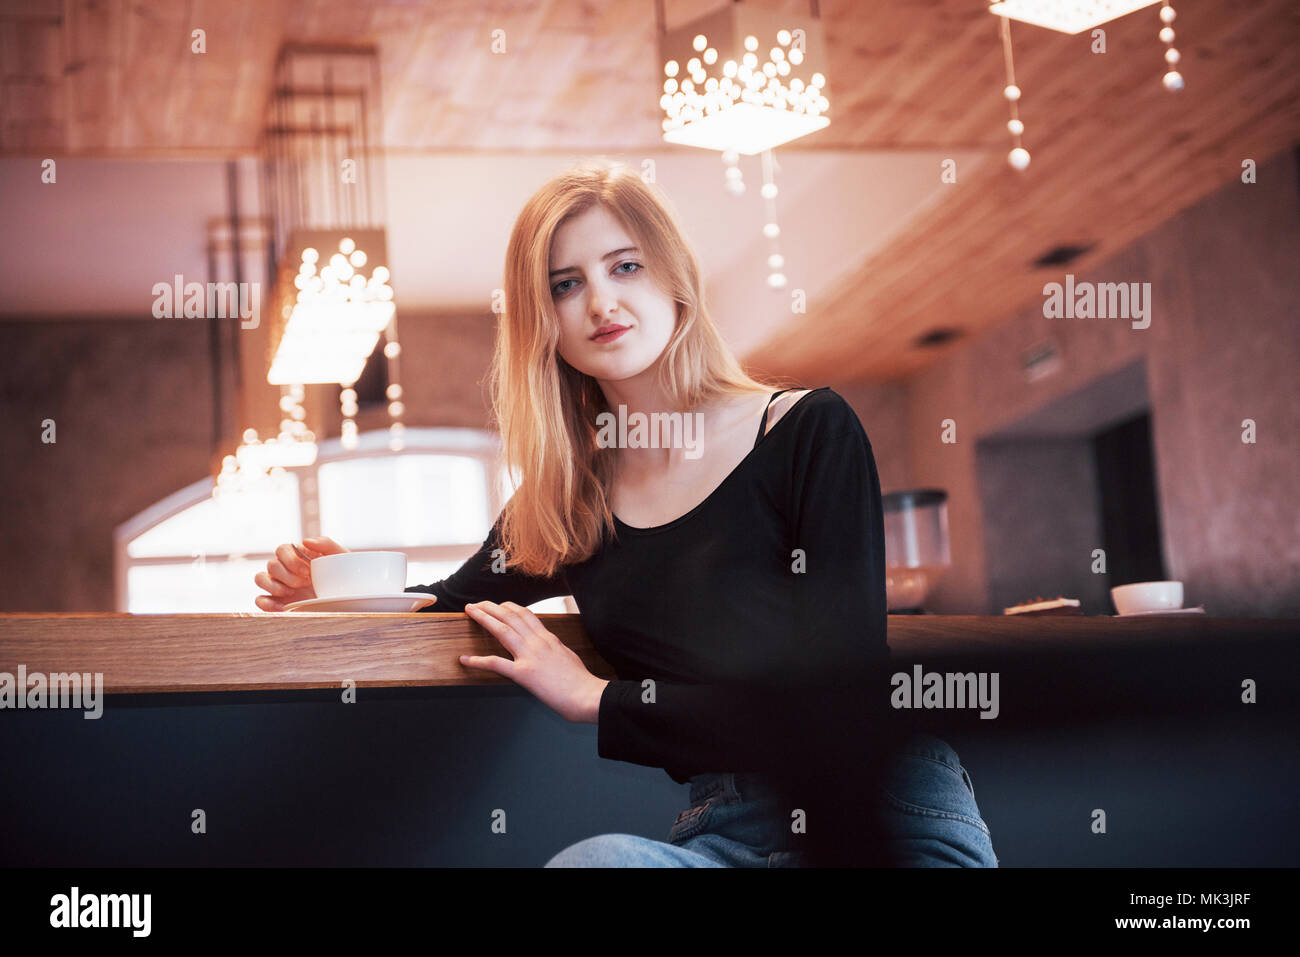 Happy smiling young woman using phone dans un café. Belle fille de couleurs tendance printemps Photo Stock